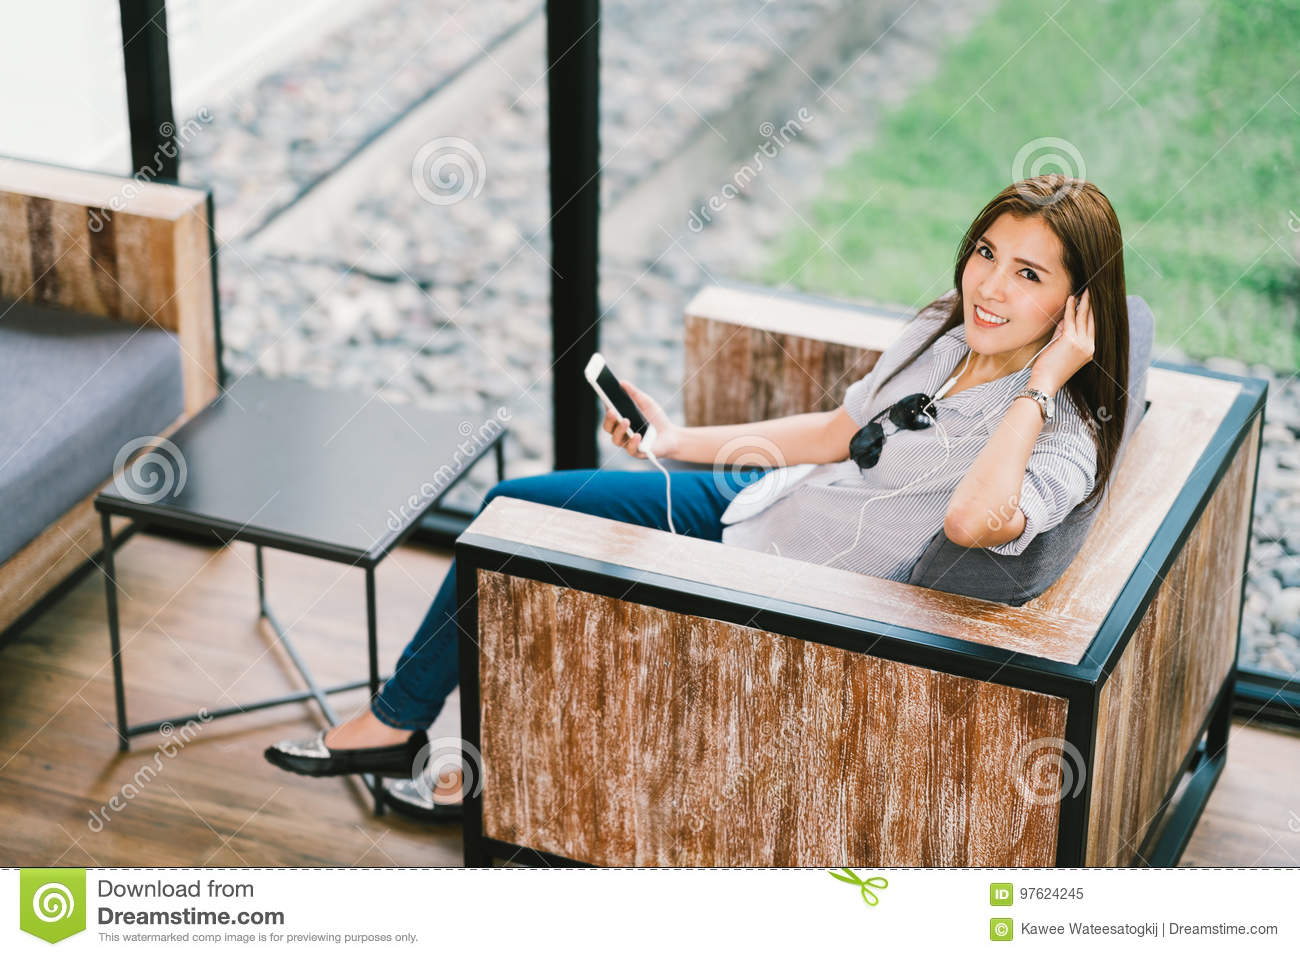 Beautiful Asian woman listening to music using smartphone, sitting in cafe or coffee shop. Relaxing hobby activity concept